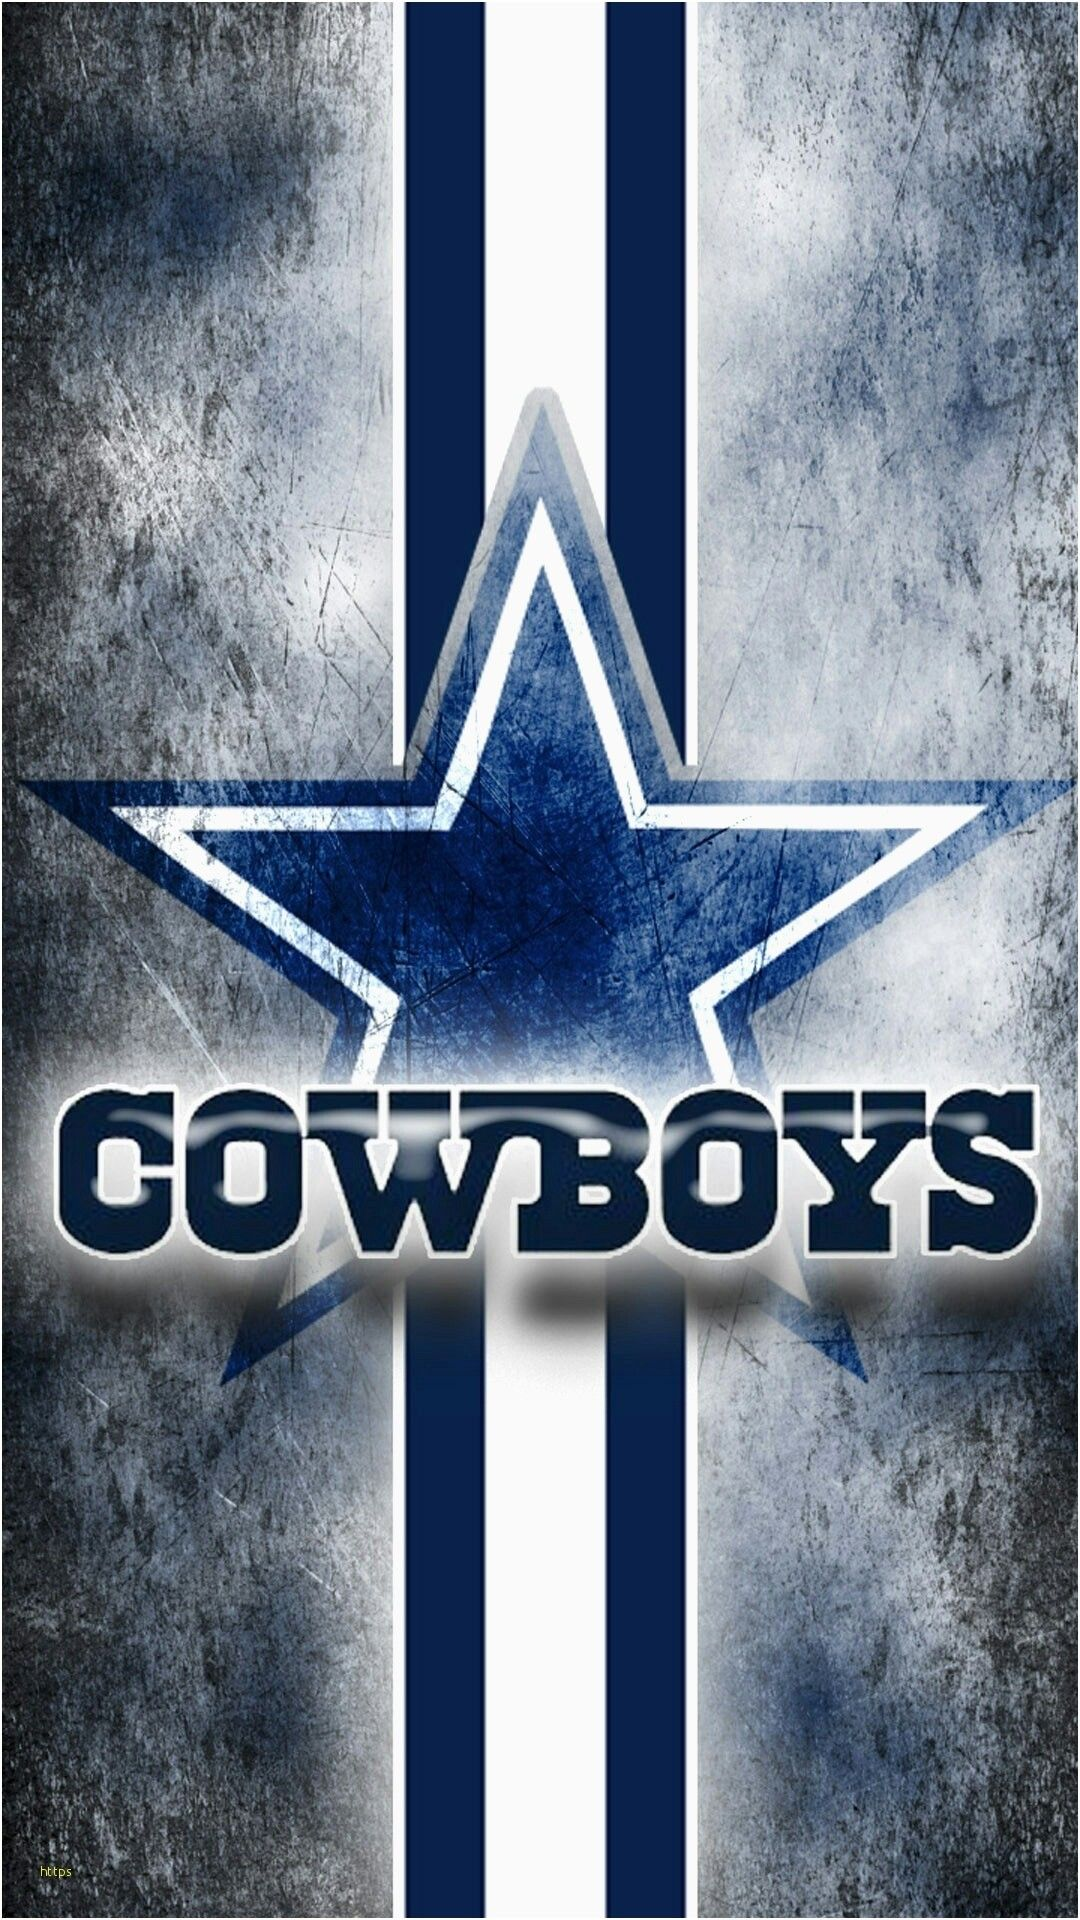 Cowboys Photo in 2020 Dallas cowboys wallpaper, Dallas